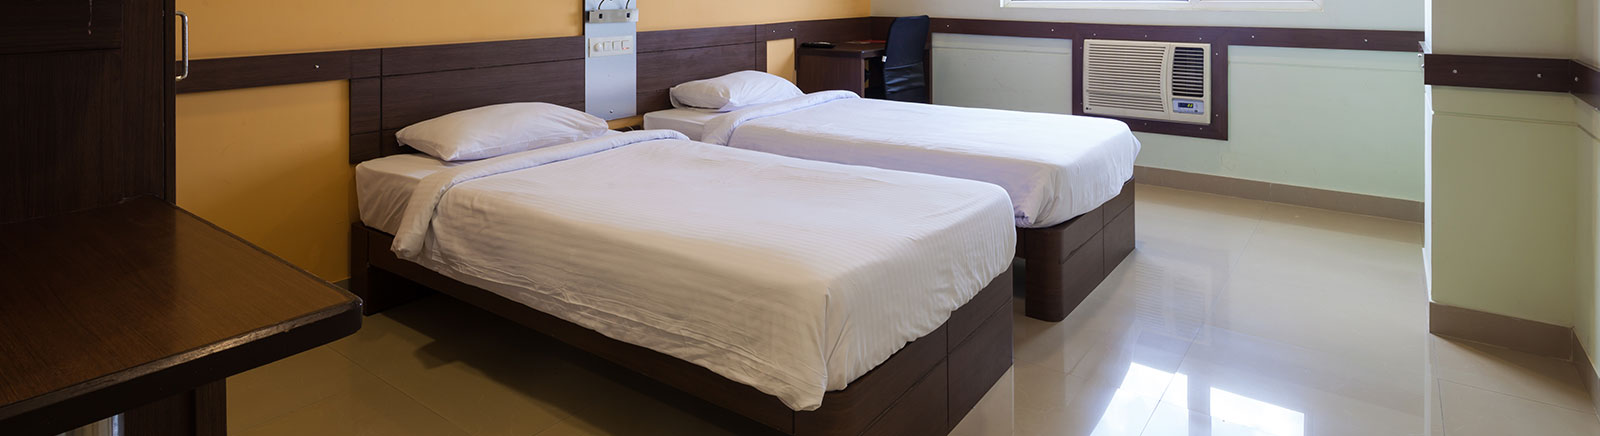 Rooms of Ginger Mumbai Andheri (MIDC)